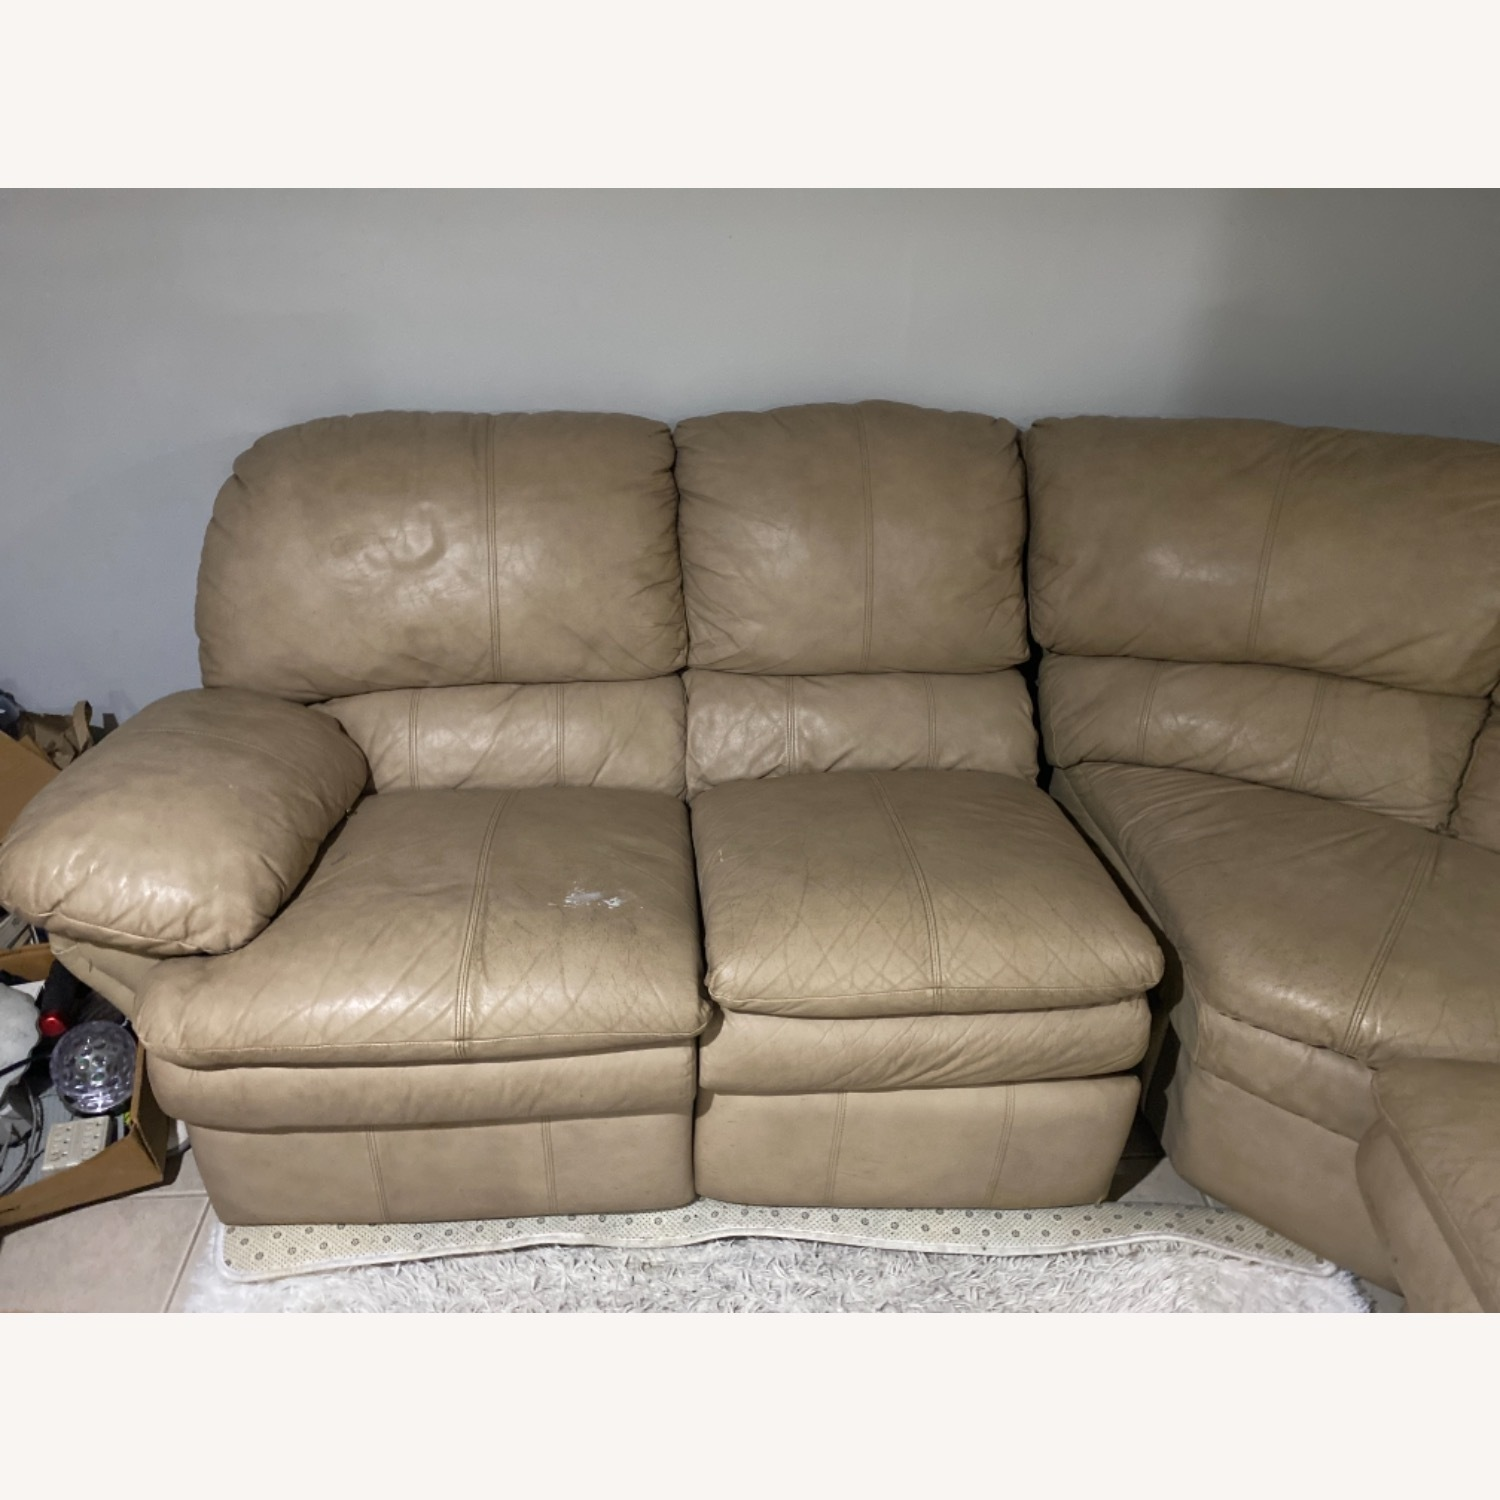 Leather Beige Couch - image-2